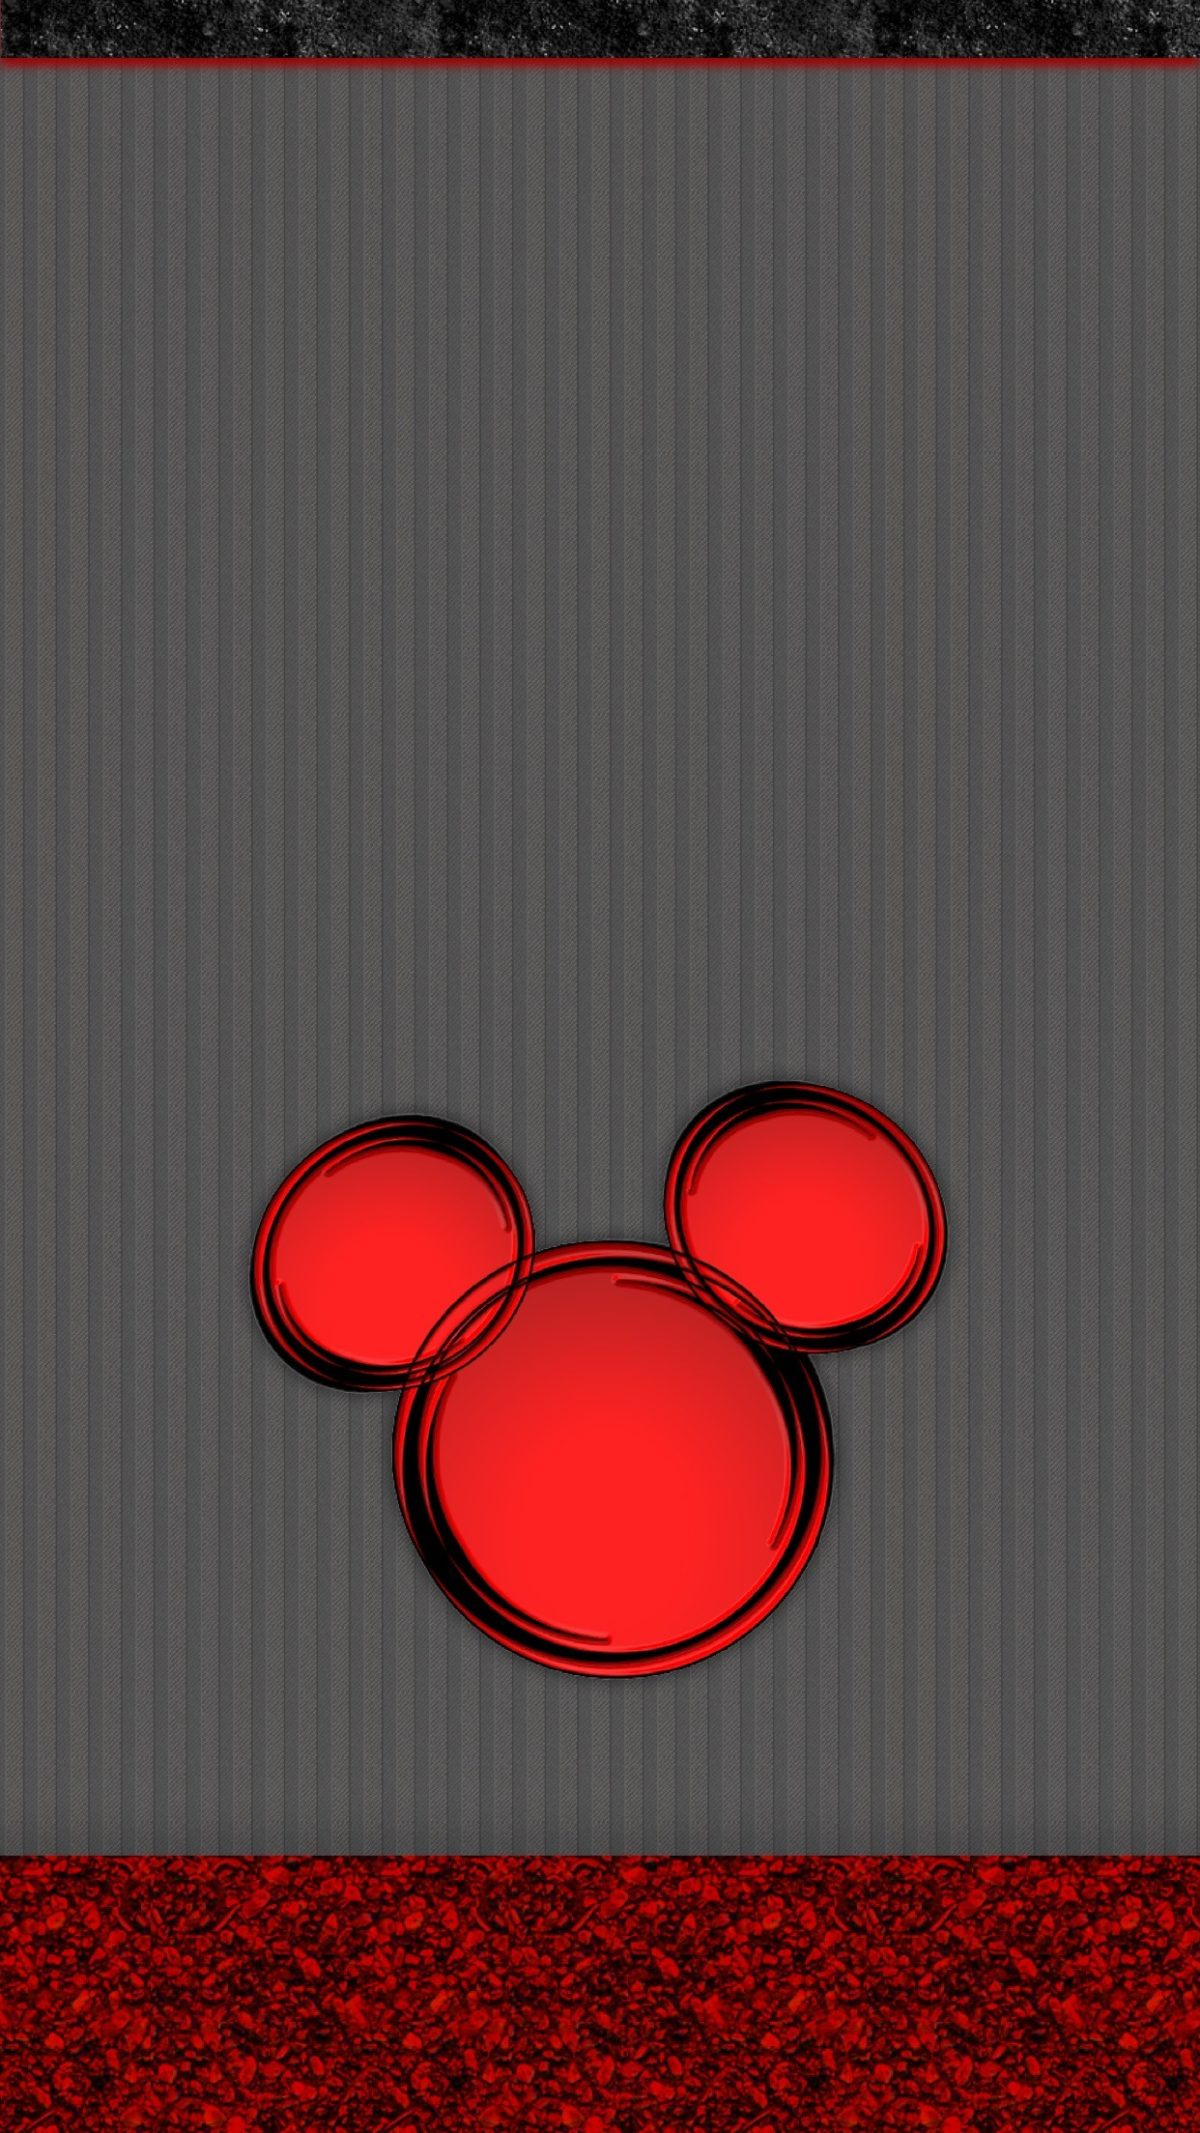 Mickey Minnie Mouse Iphone Wallpaper Iphone 6 Dyi Screens